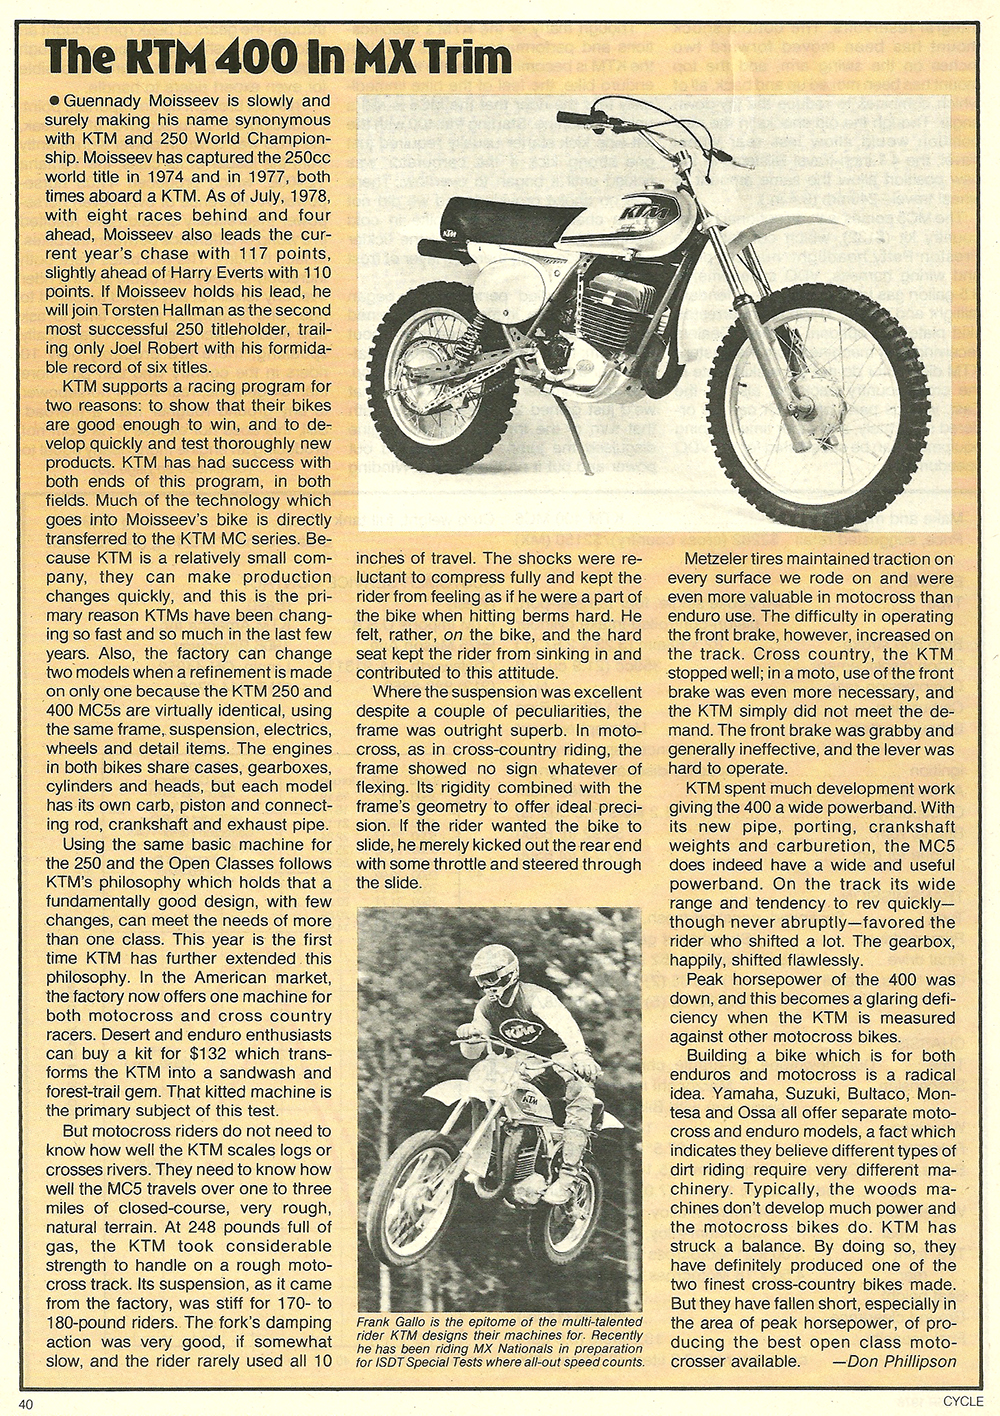 1978 KTM 400 MC5 road test 07.jpg